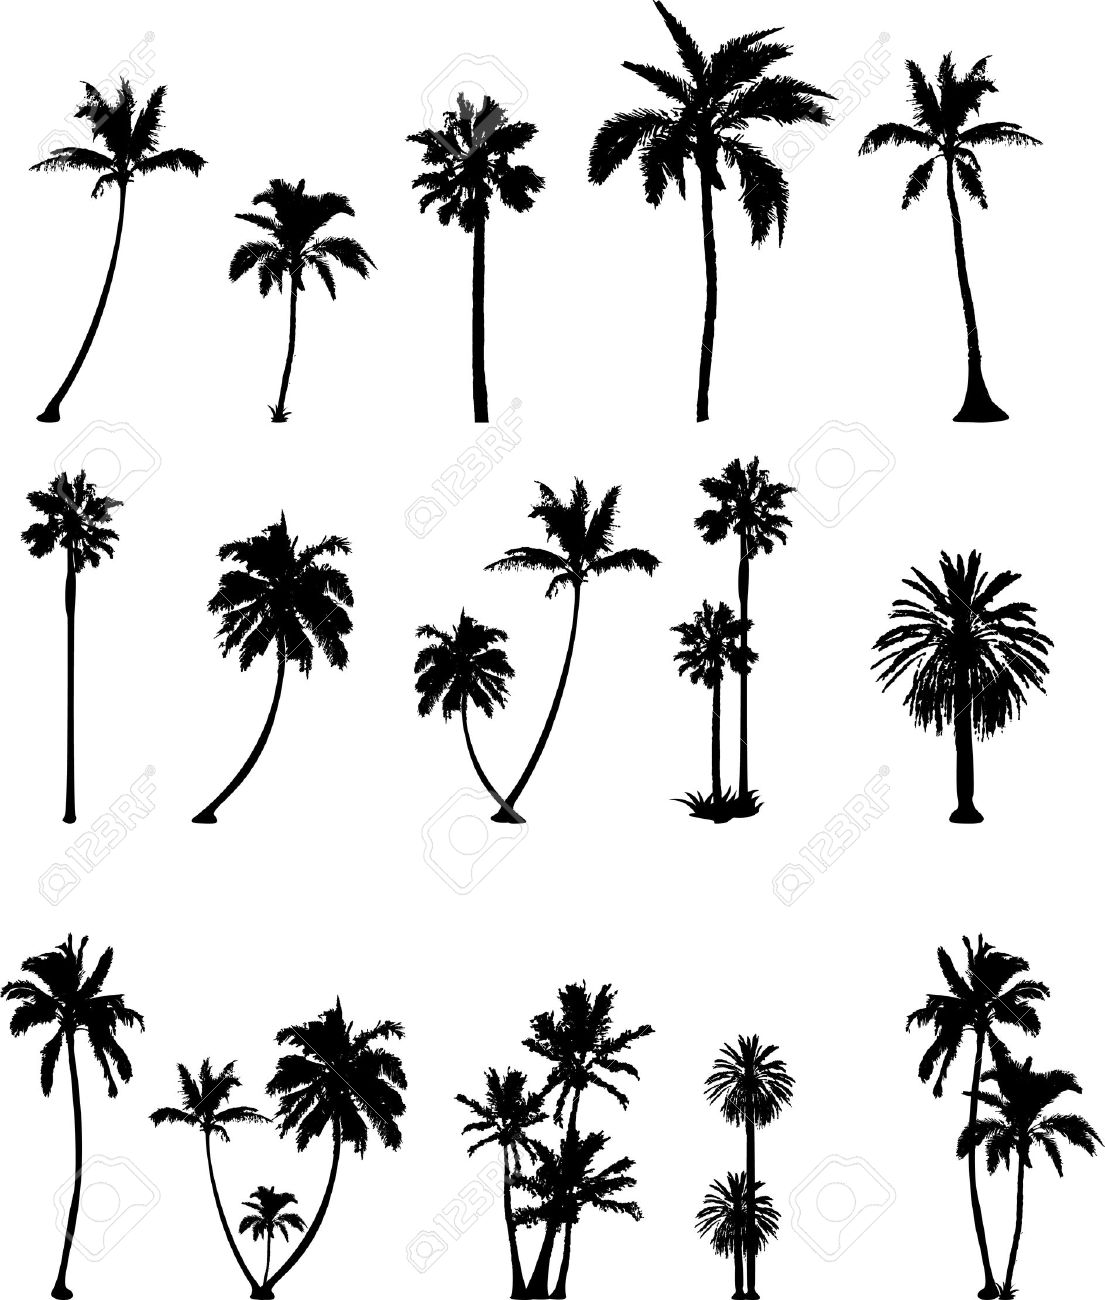 various vector trees silhouettes for you design - 44574402